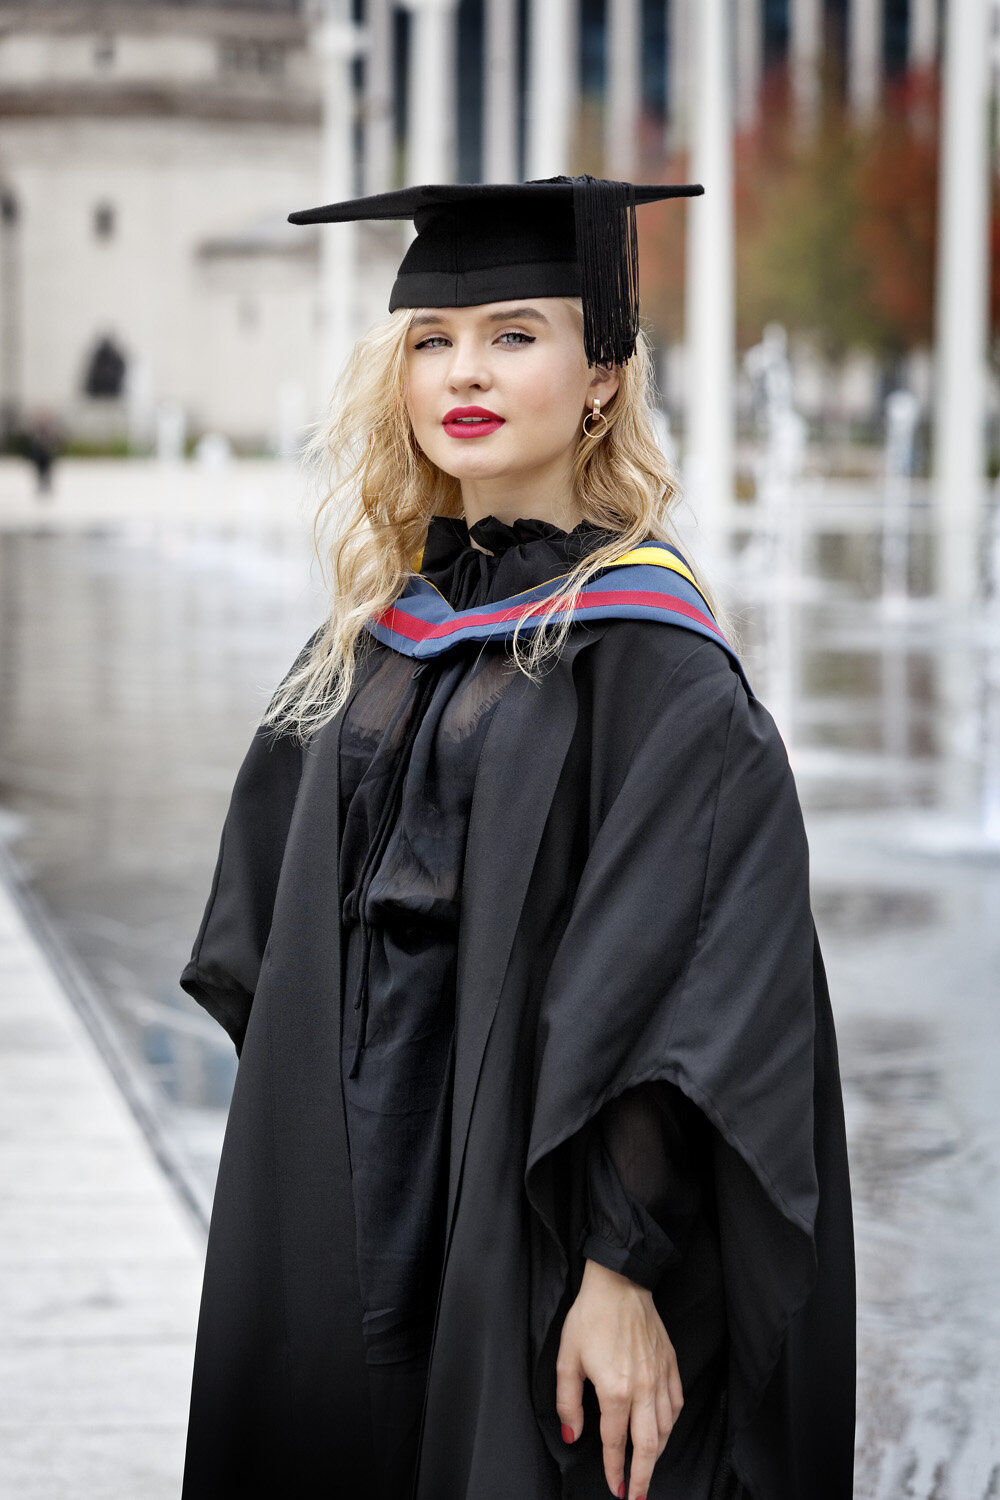 Graduation Portrait - Birmingham, UK